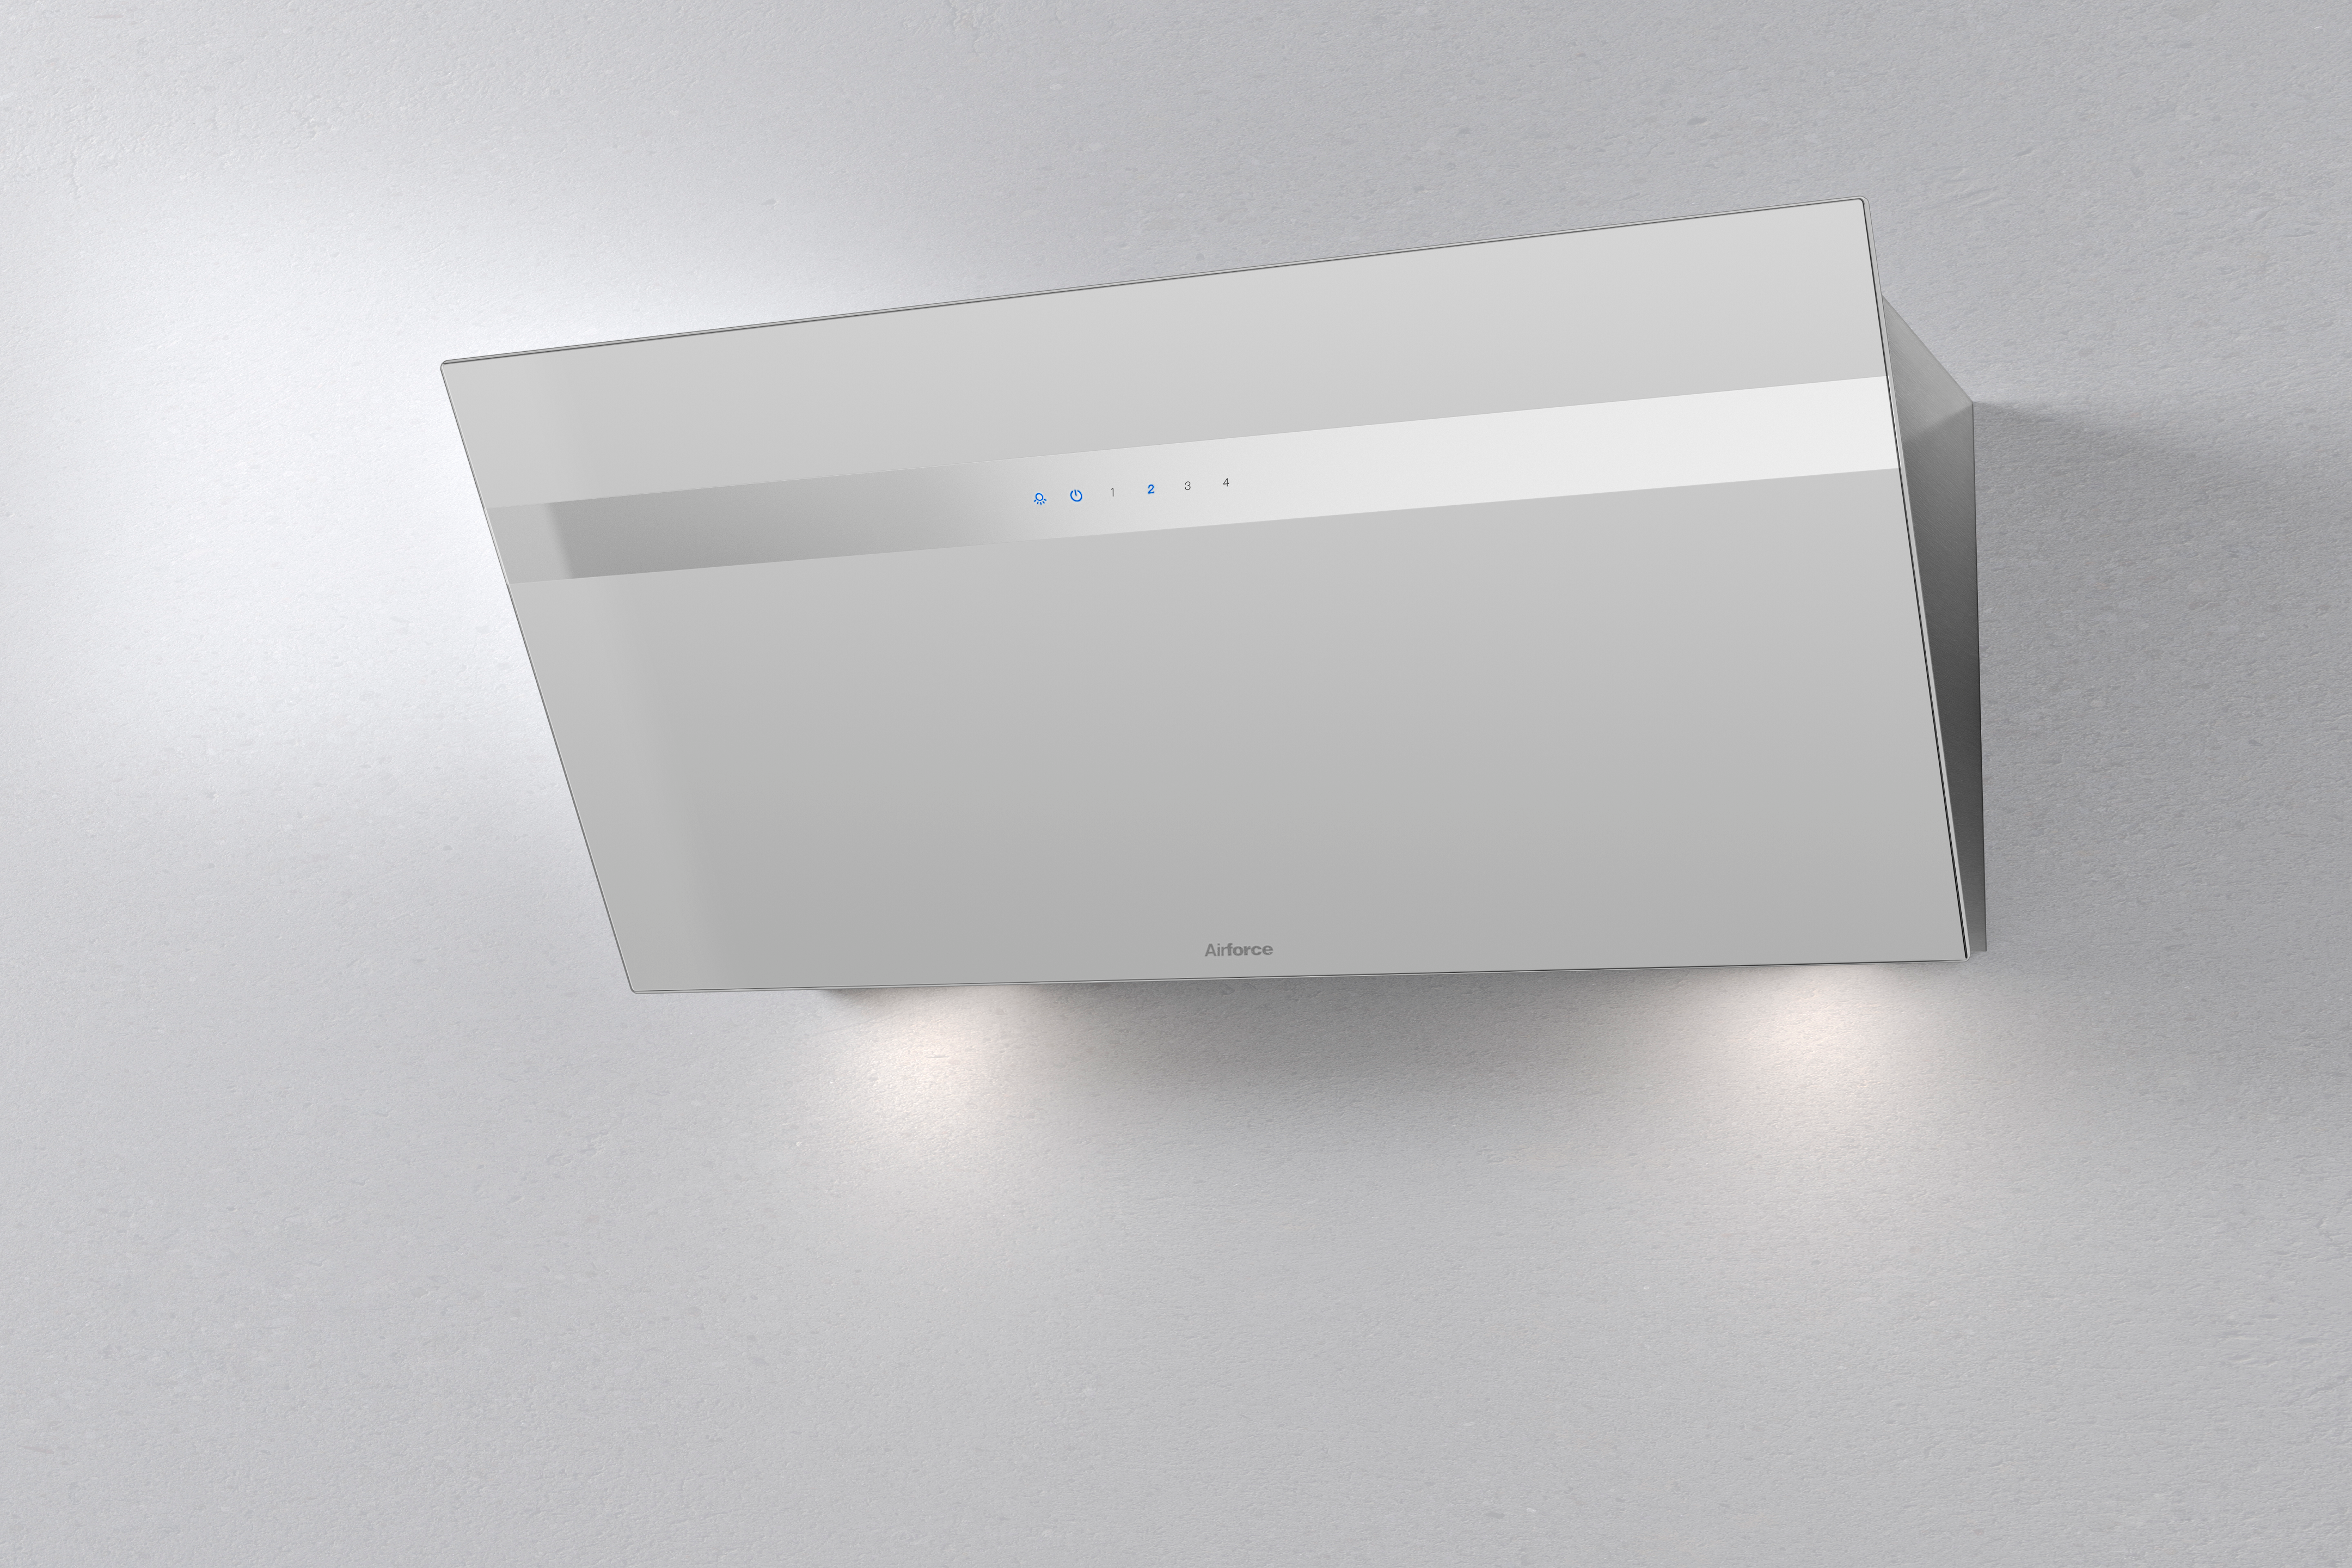 Airforce V4 90cm Angled Wall Mounted Cooker Hood - White glass